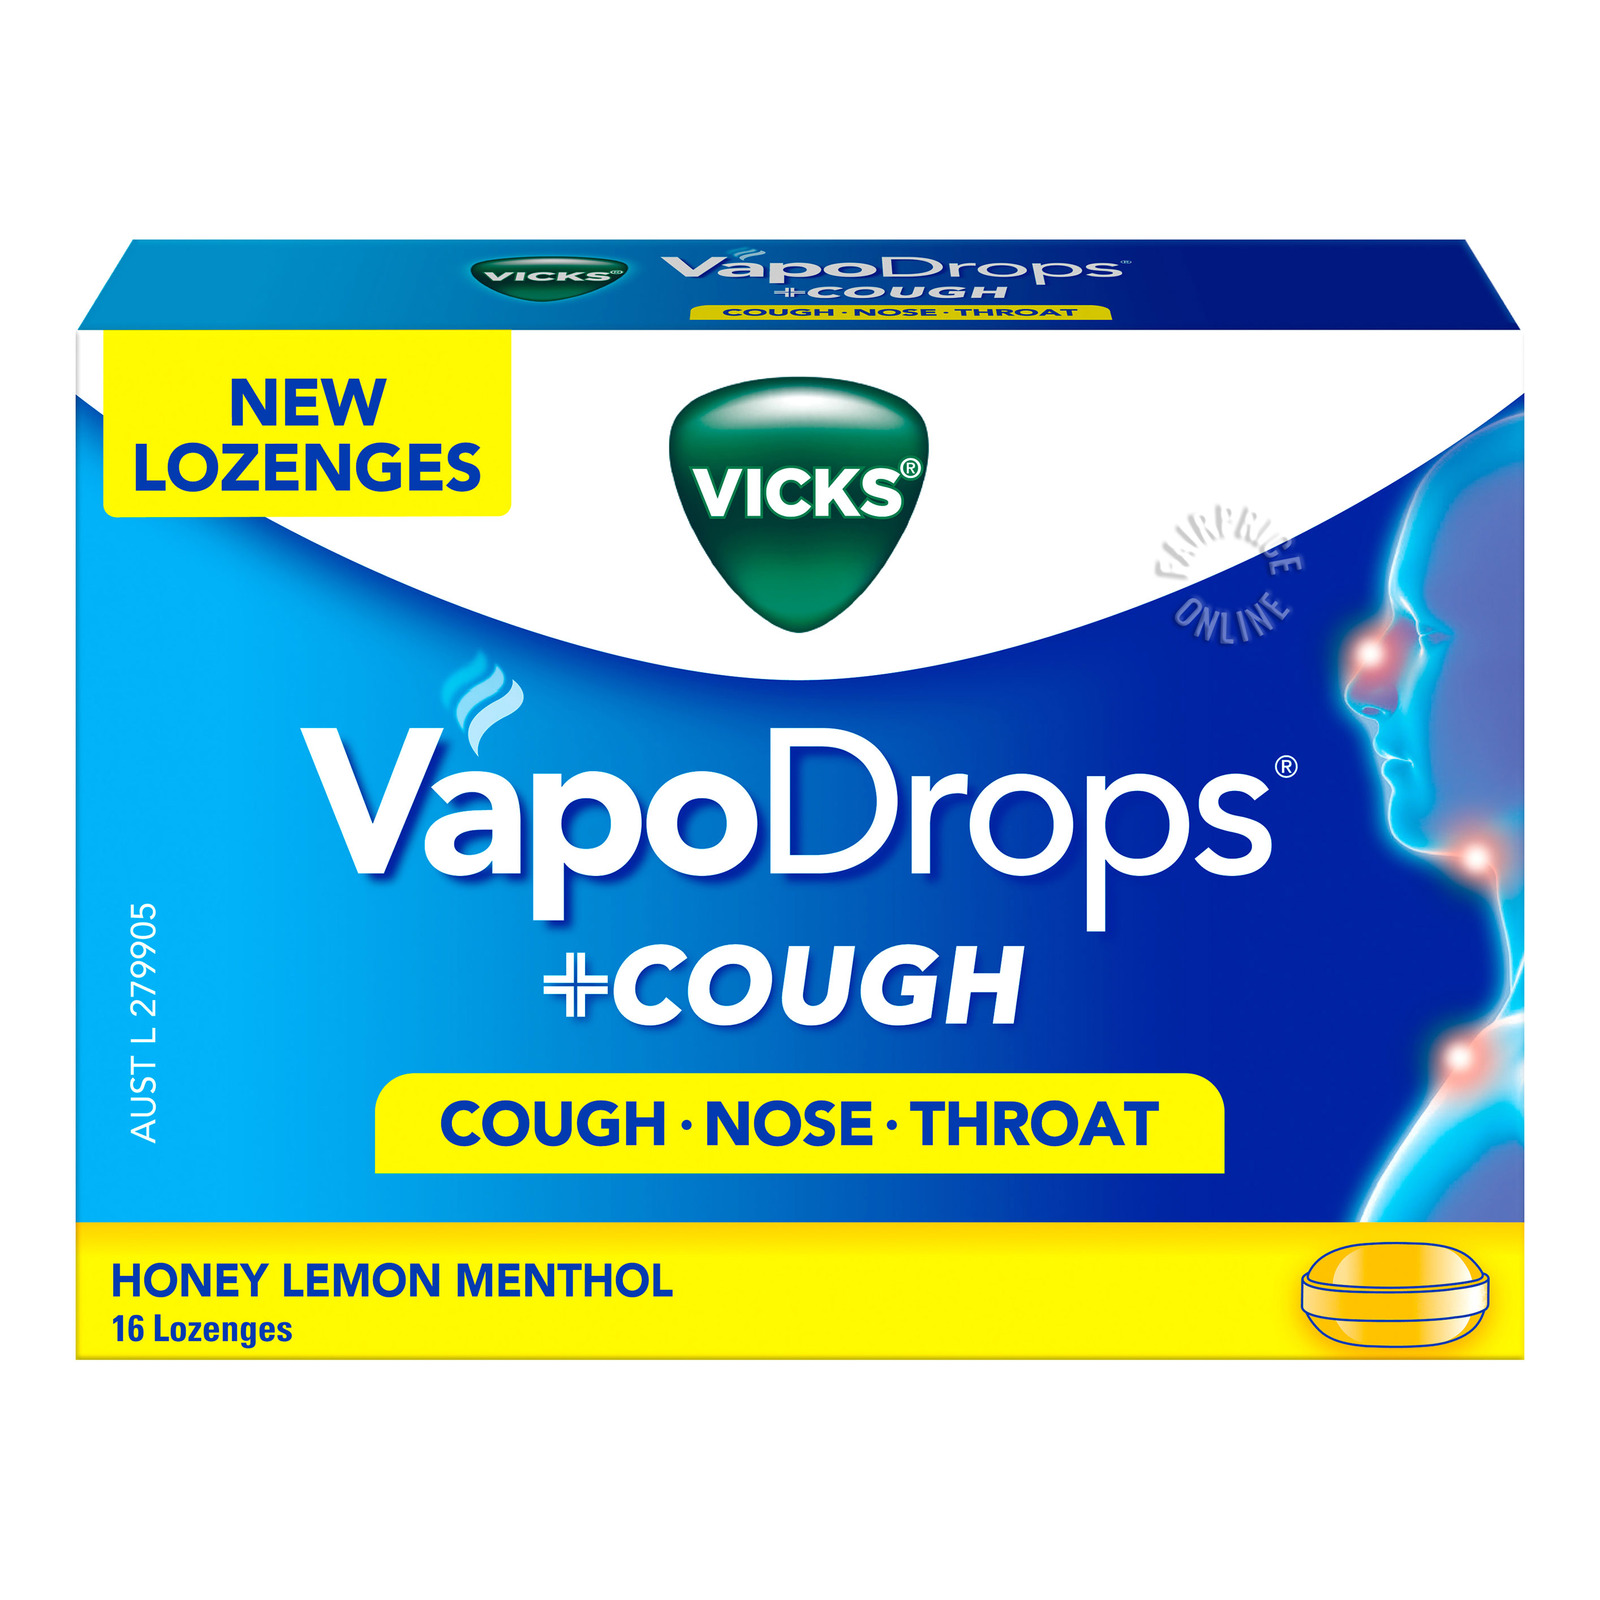 Vicks VapoDrops + Cough Menthol Lozenges - Honey Lemon